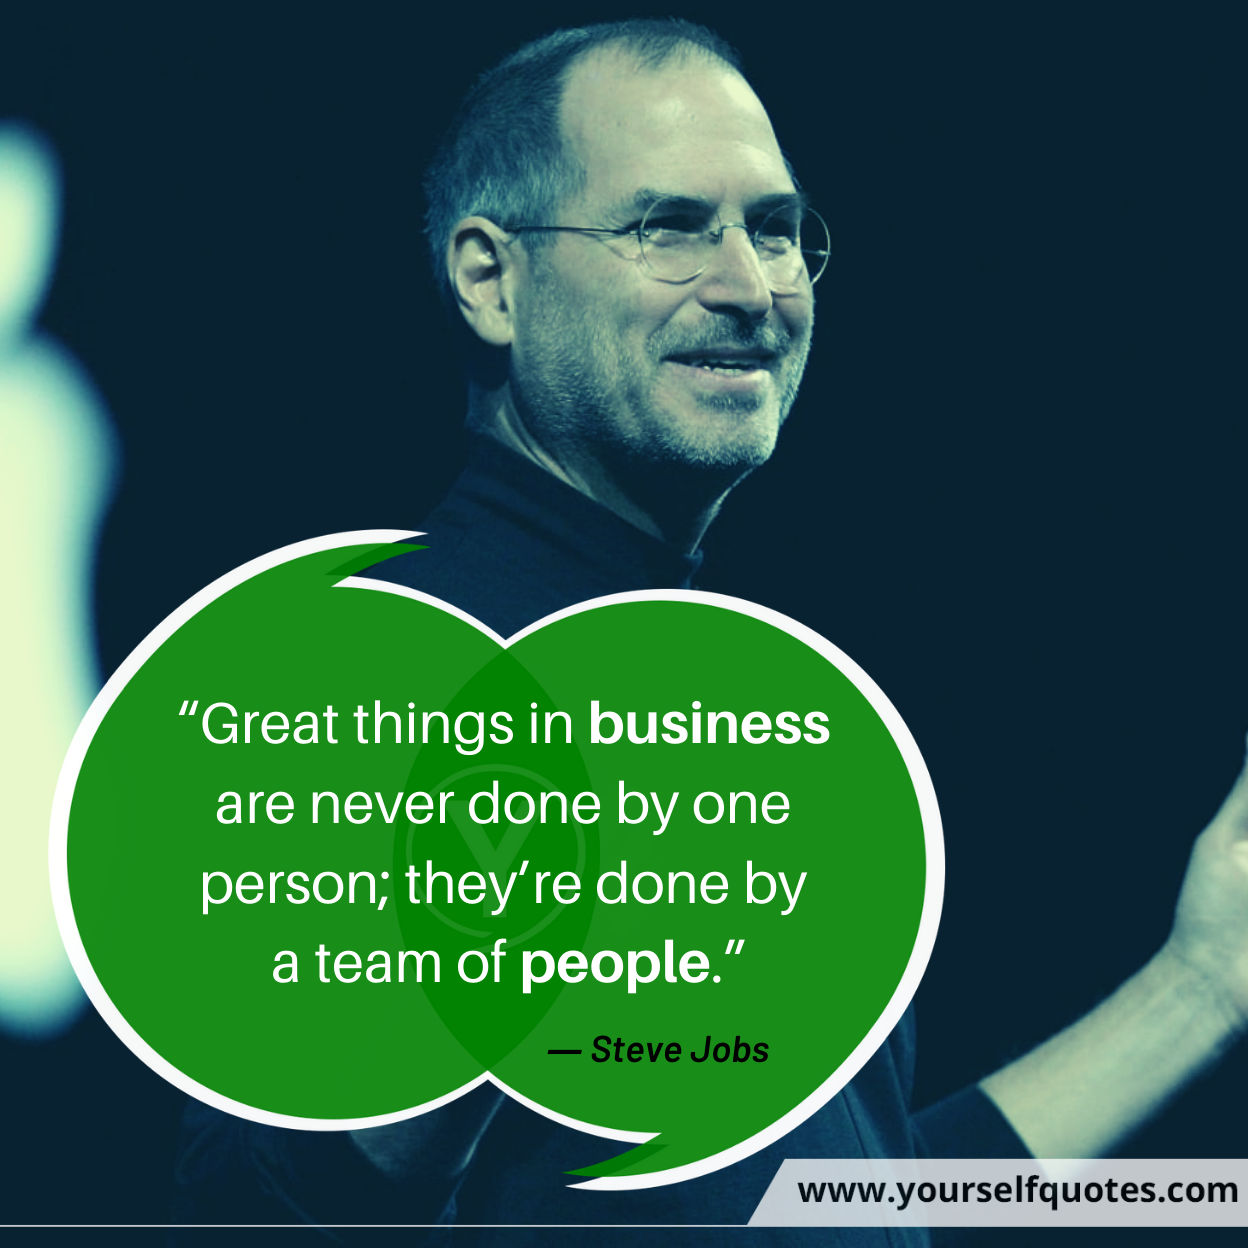 Steve Jobs Quotes on Business